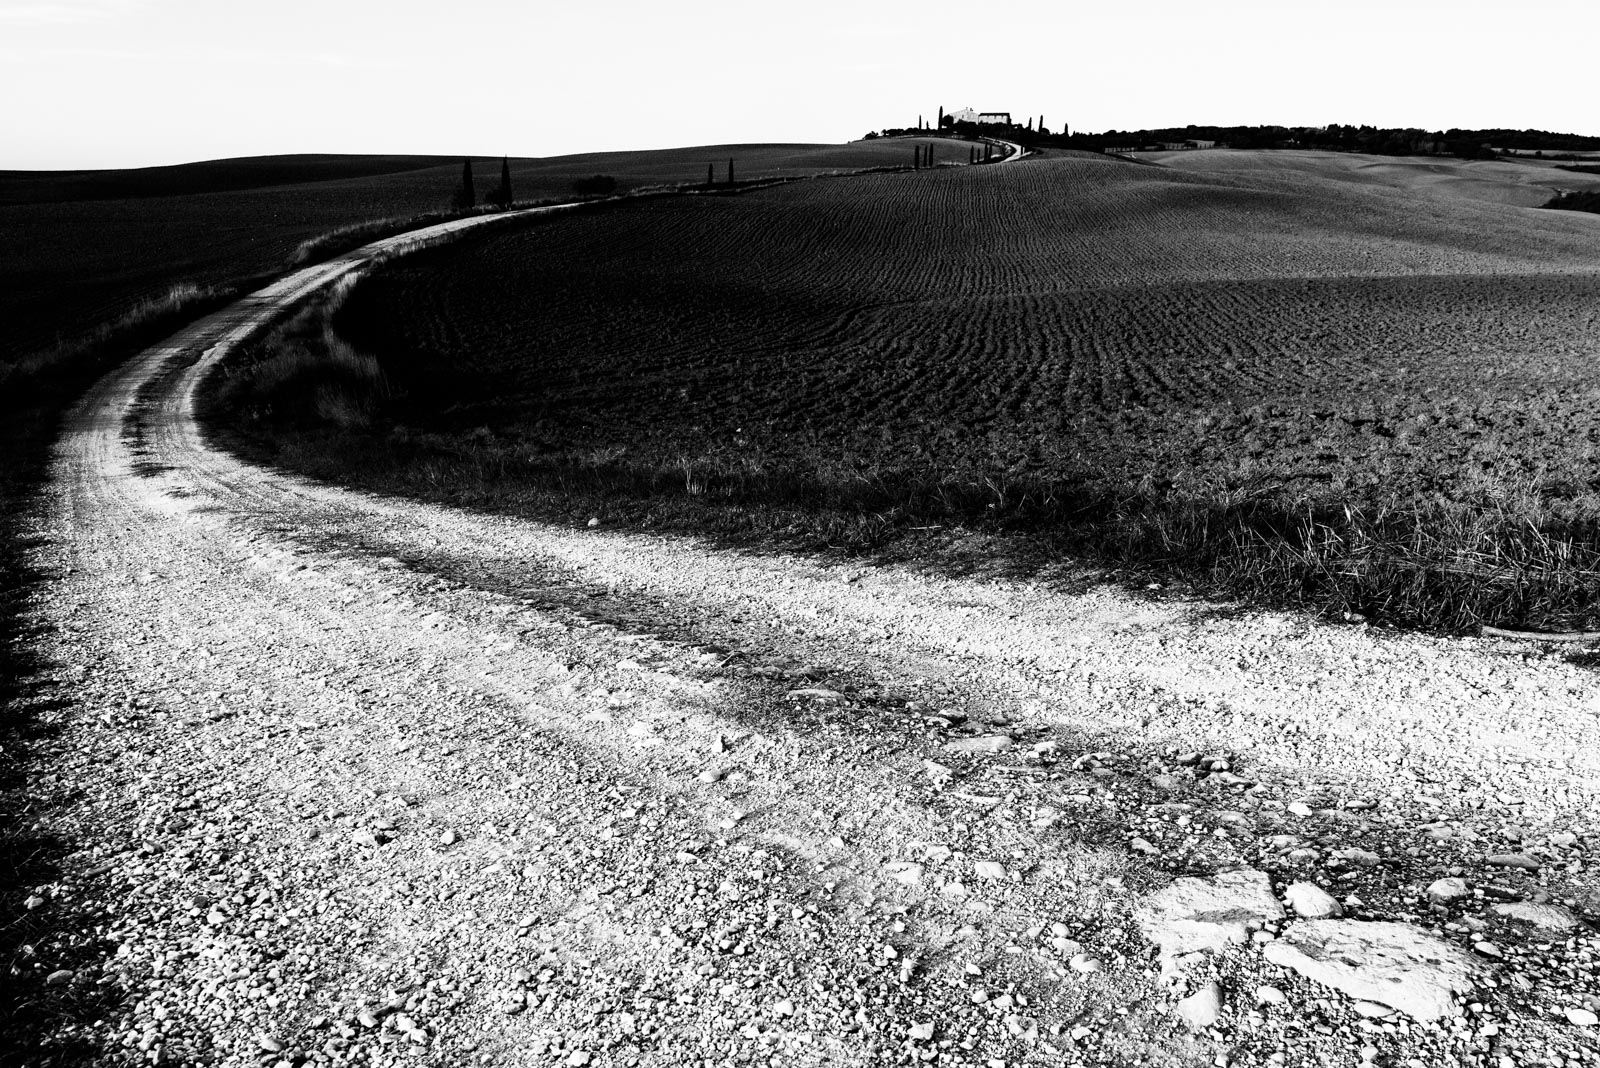 Le Strade Bianche - Parco Val d'Orcia